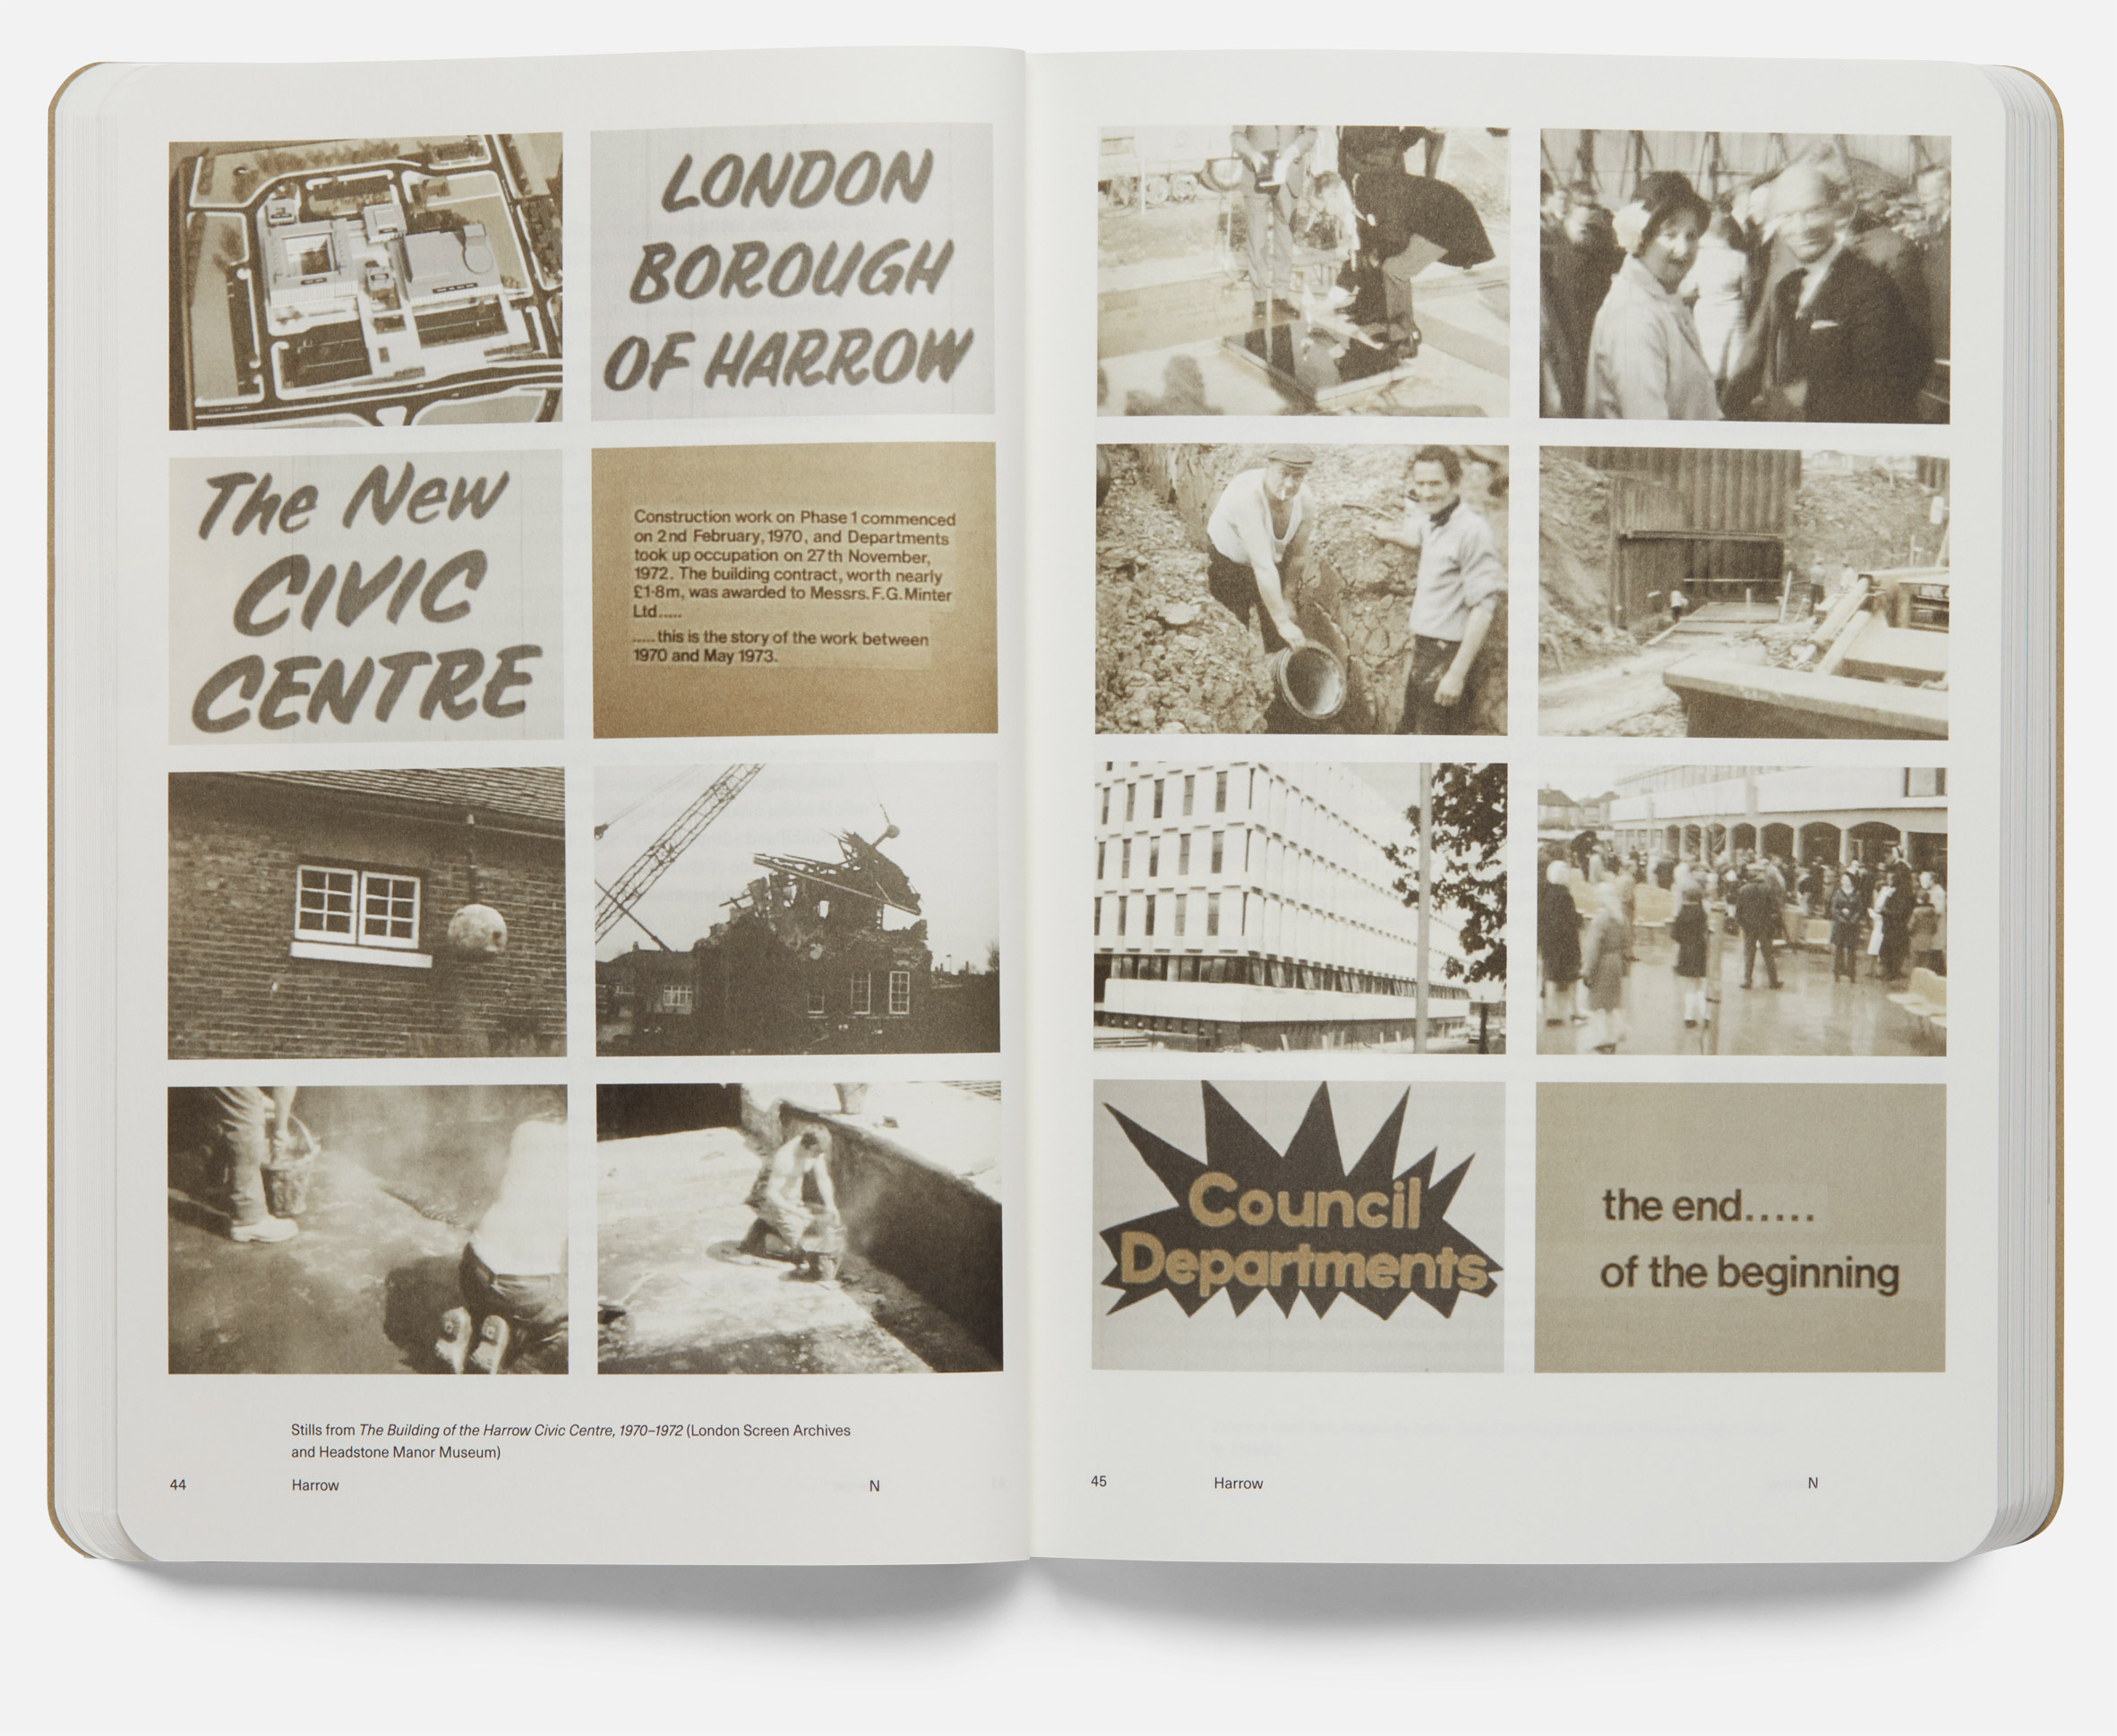 Open House London's The Alternative Guide to the London Boroughs book